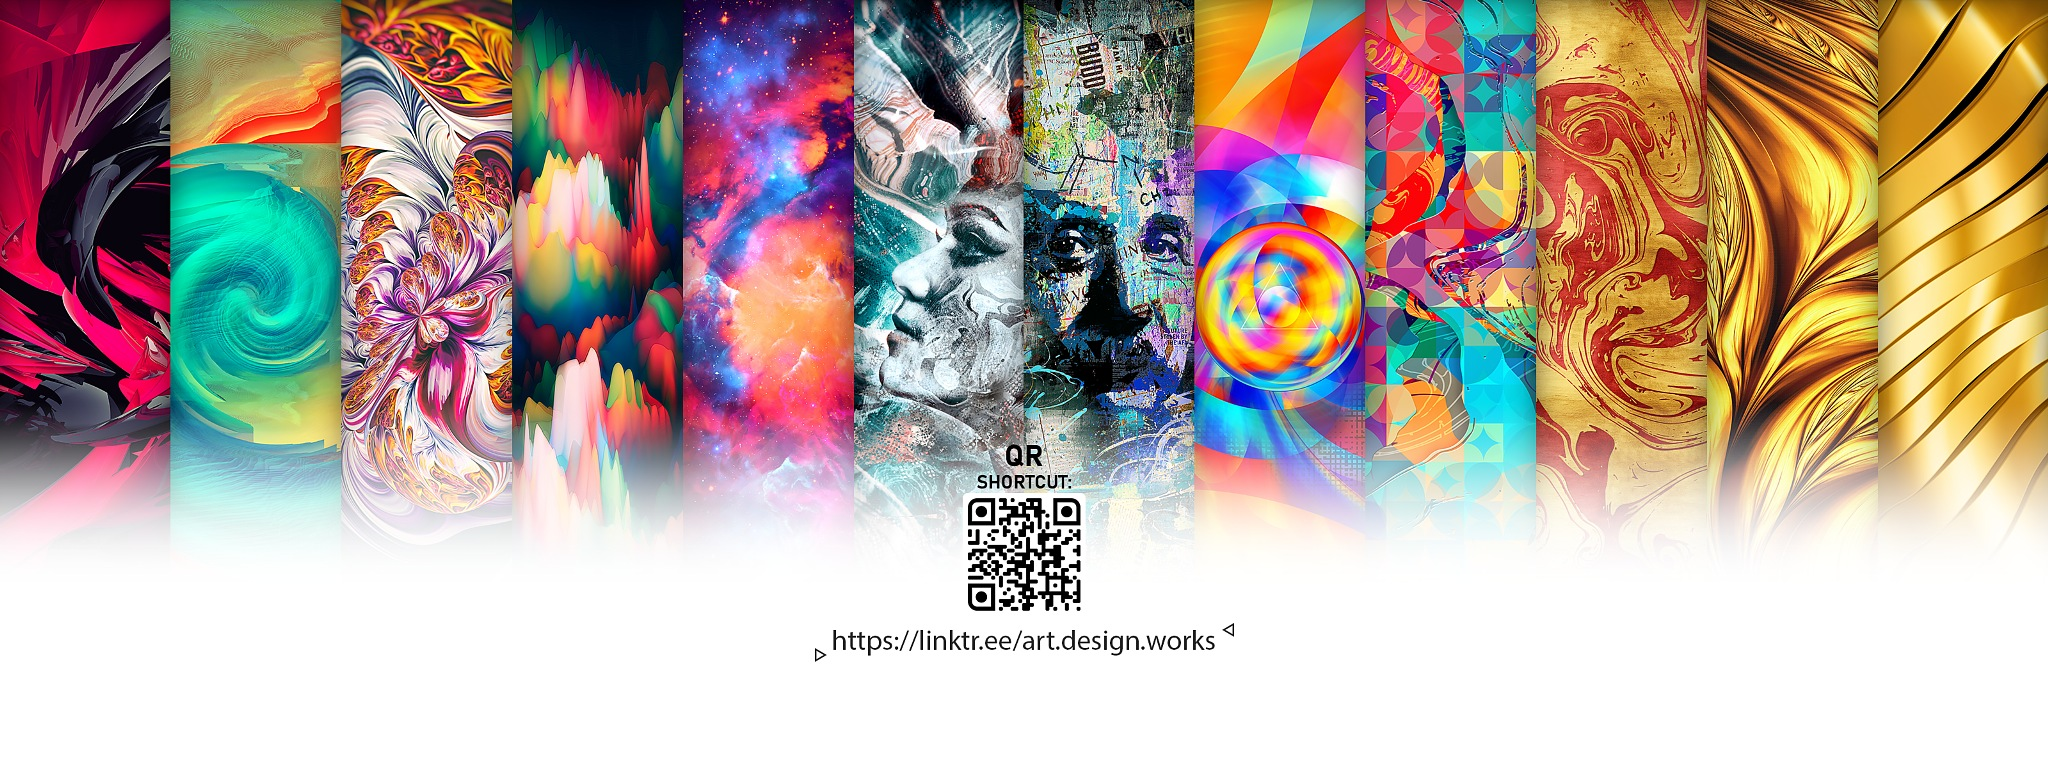 Profile Cover by Art Design Works